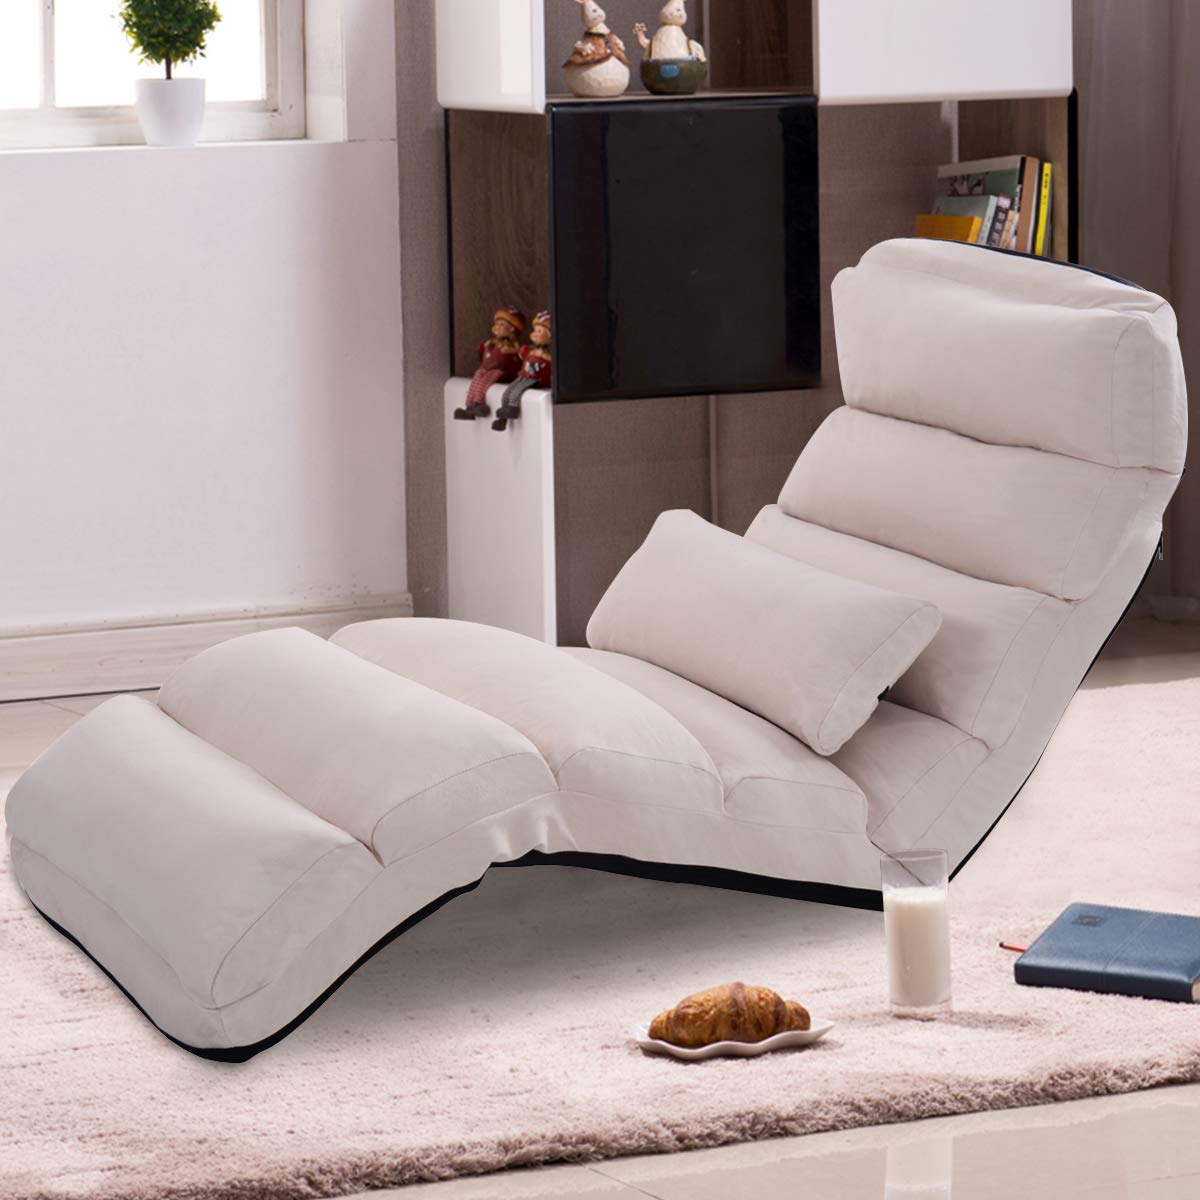 Giantex Folding Lazy Sofa W/Pillow (Beige), $92 @amazon.com